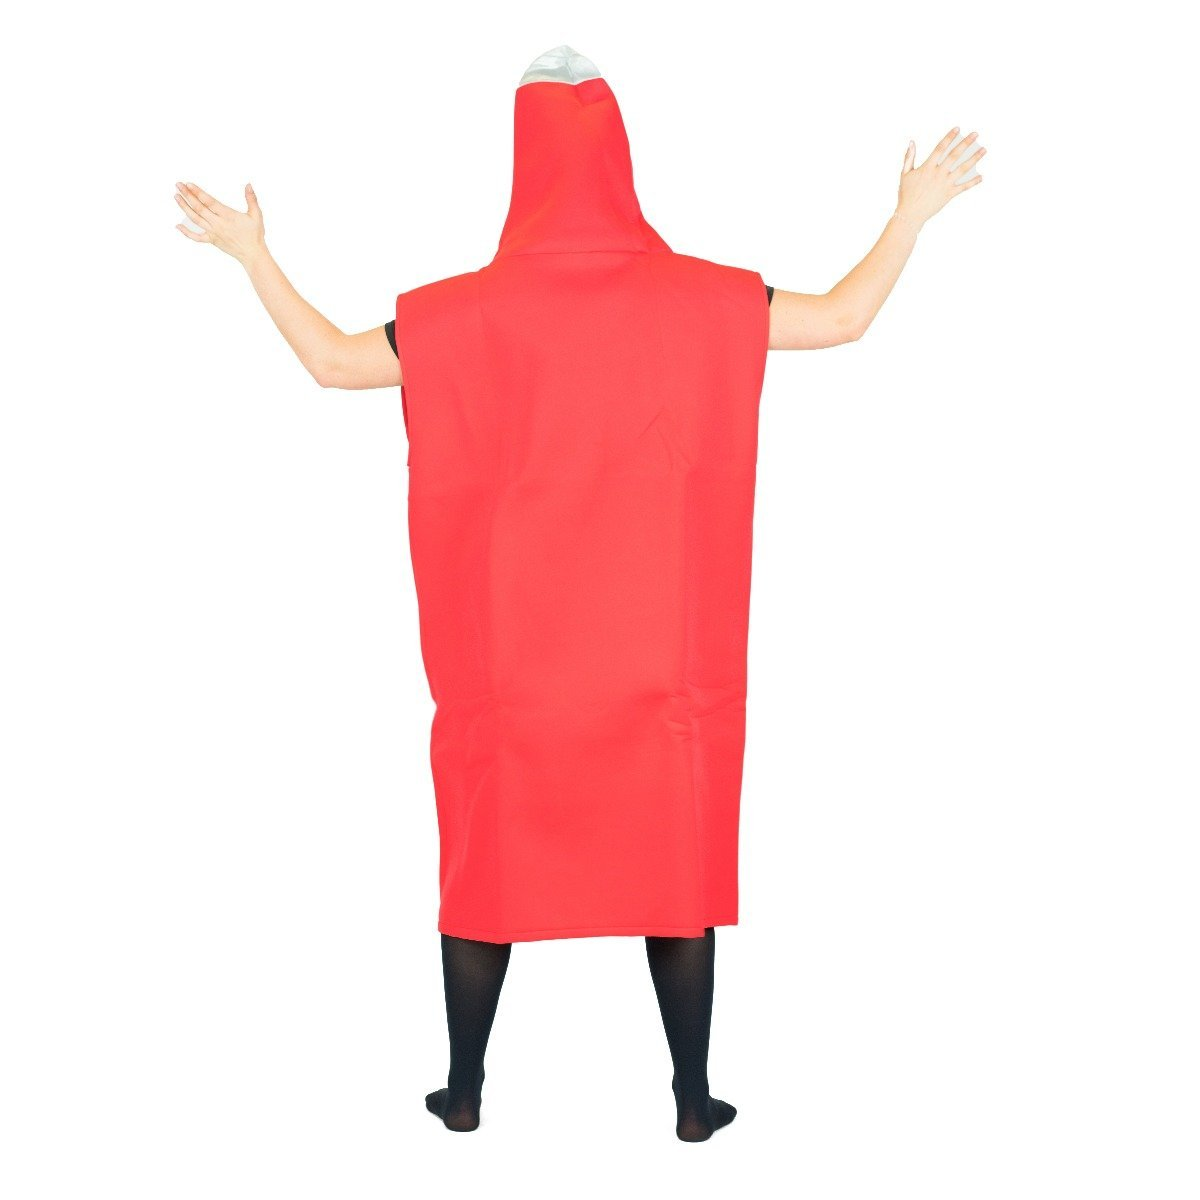 Bodysocks - Ketchup Costume